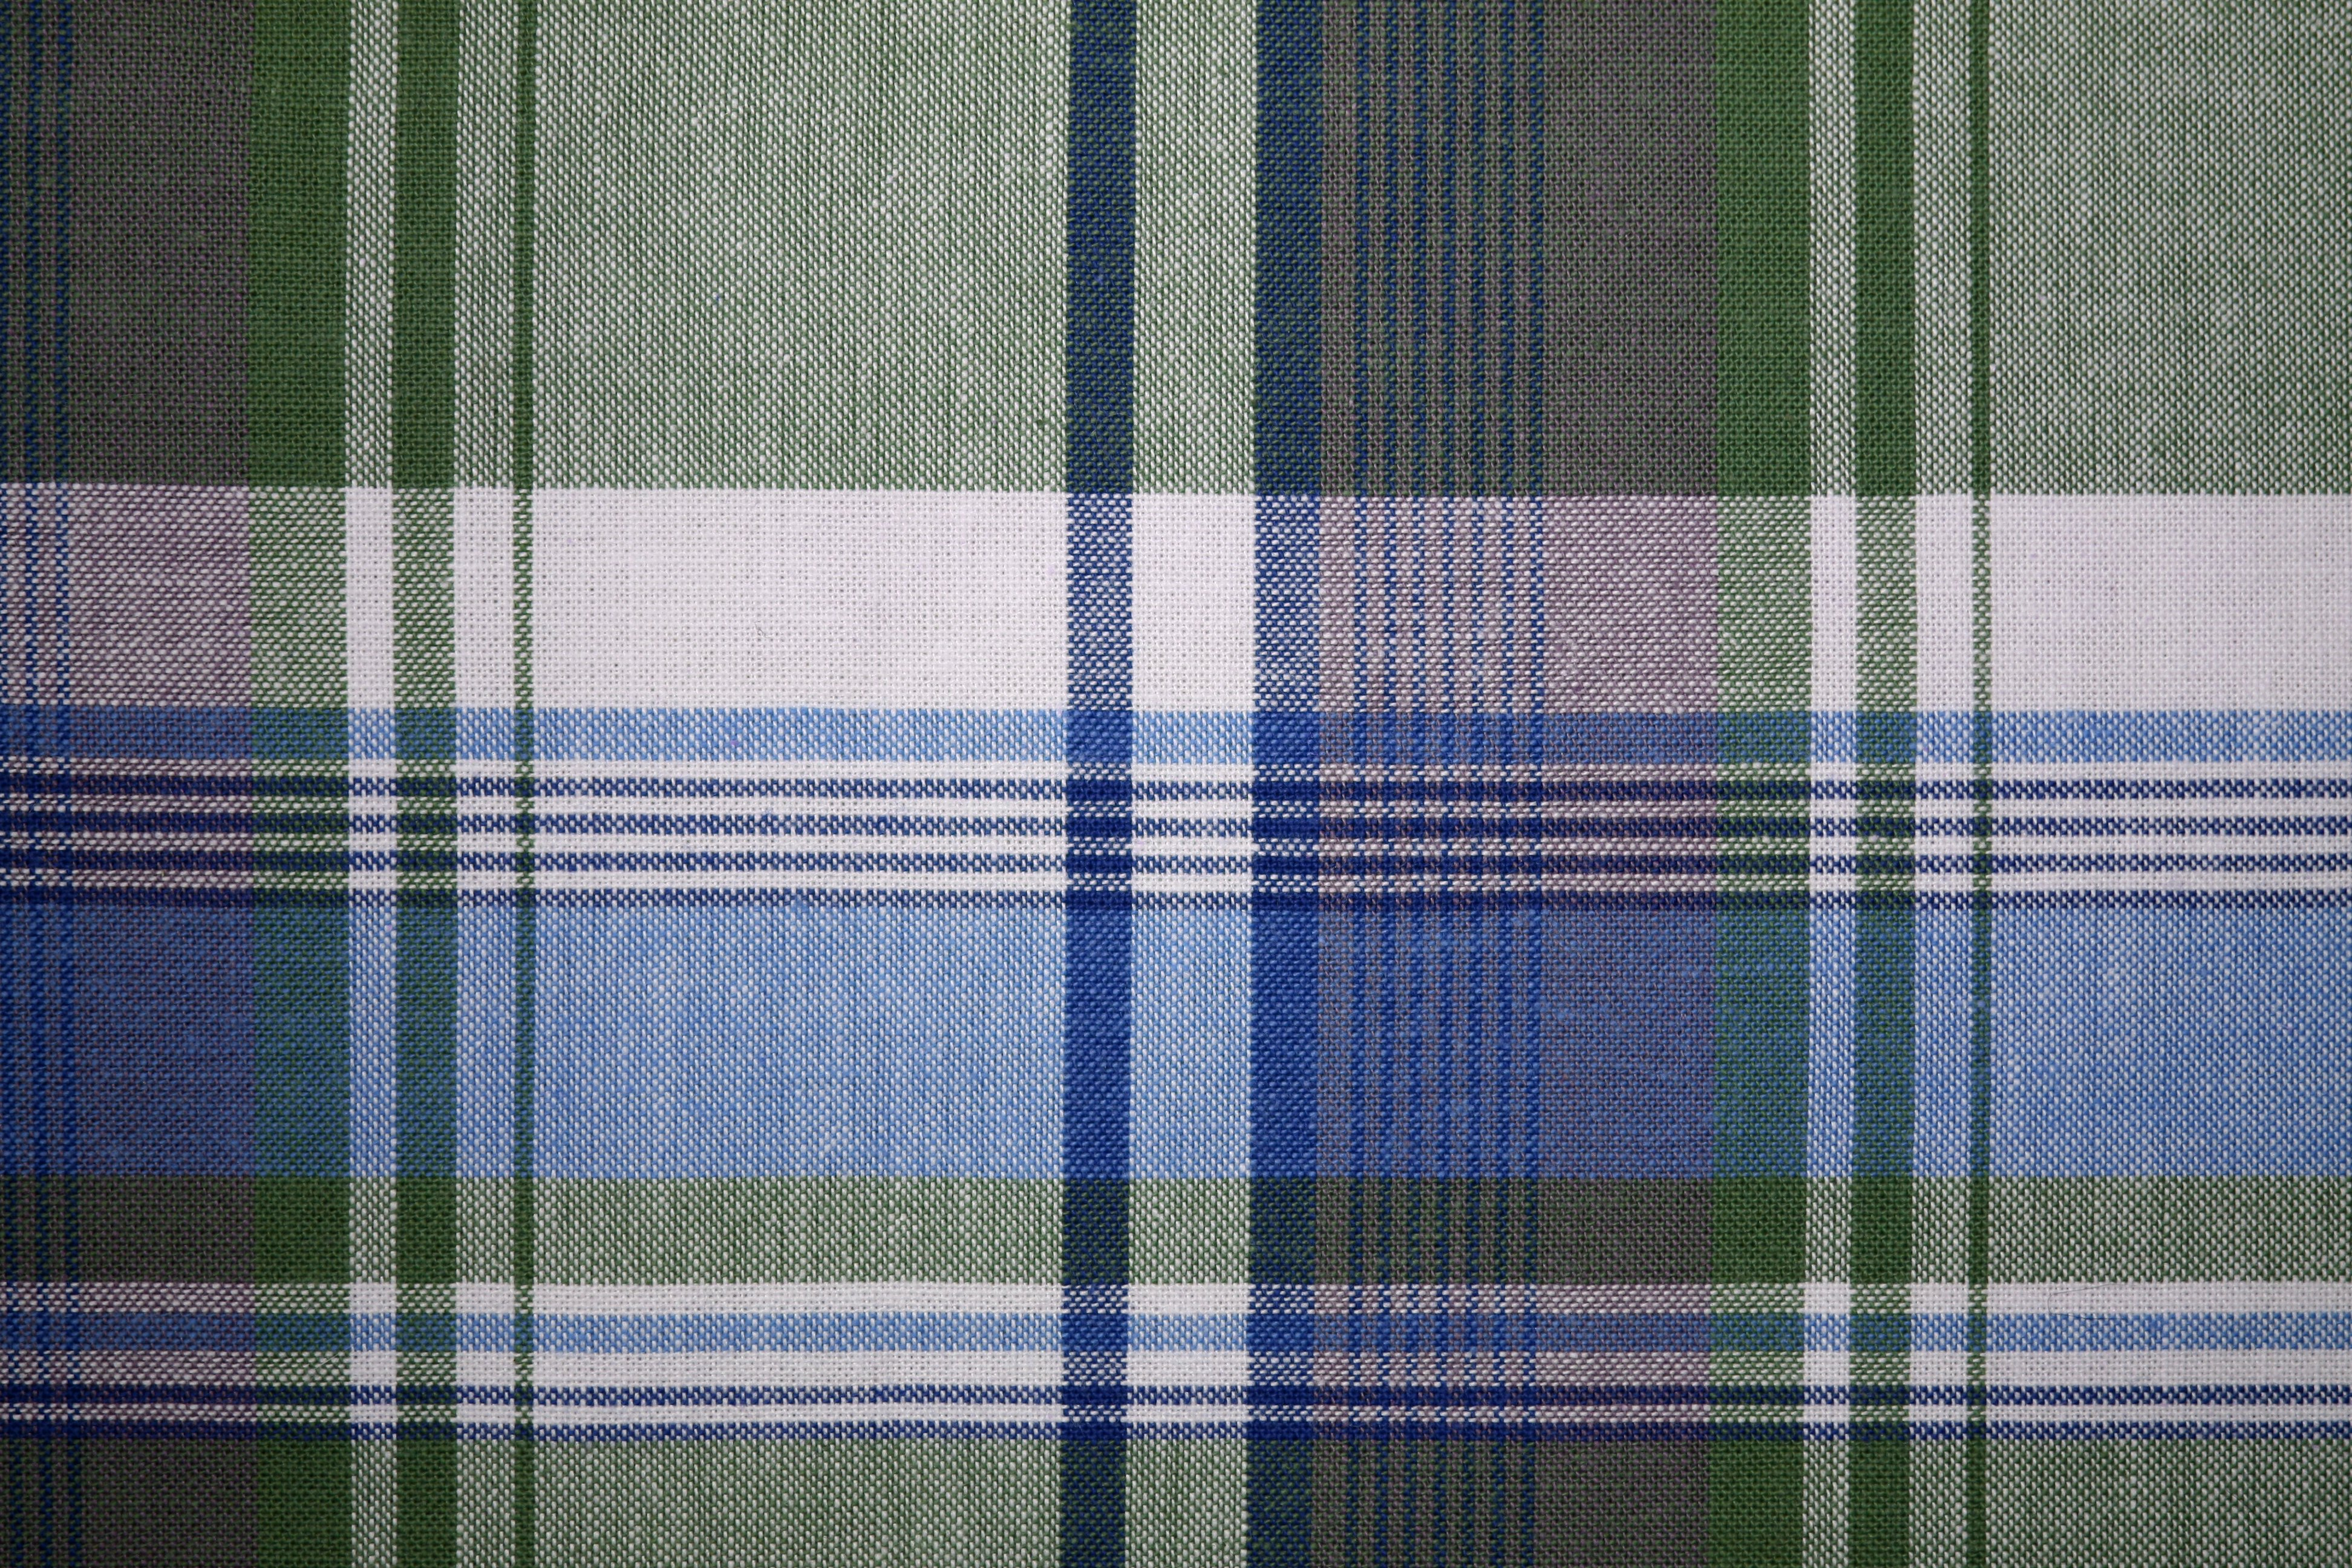 Plaid Fabric Texture Blue and Green Picture | Free Photograph ...